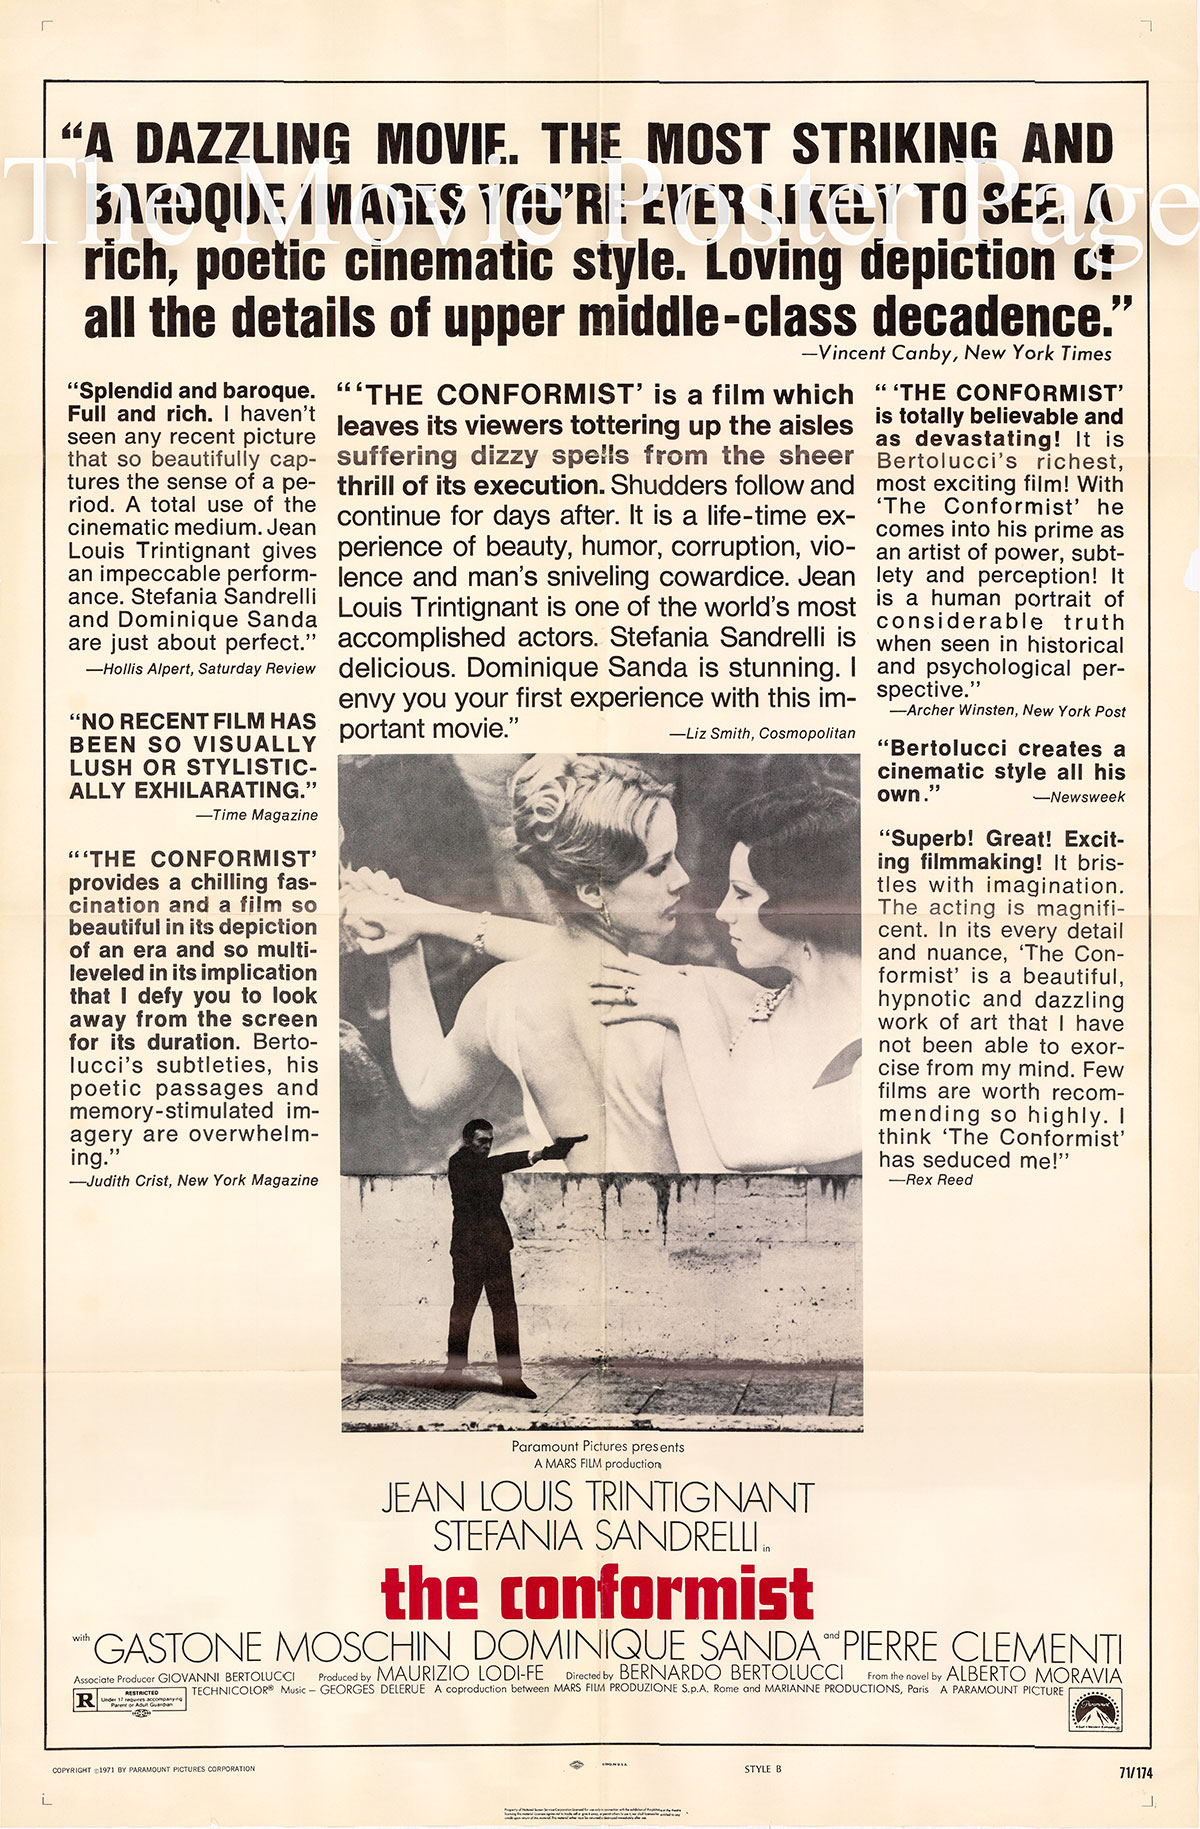 Pictured is a US promotional one-sheet poster for the 1971 Bernardo Bertolucci film The Conformist starring Jean-Luis Trintignant as Marcello Clerici.